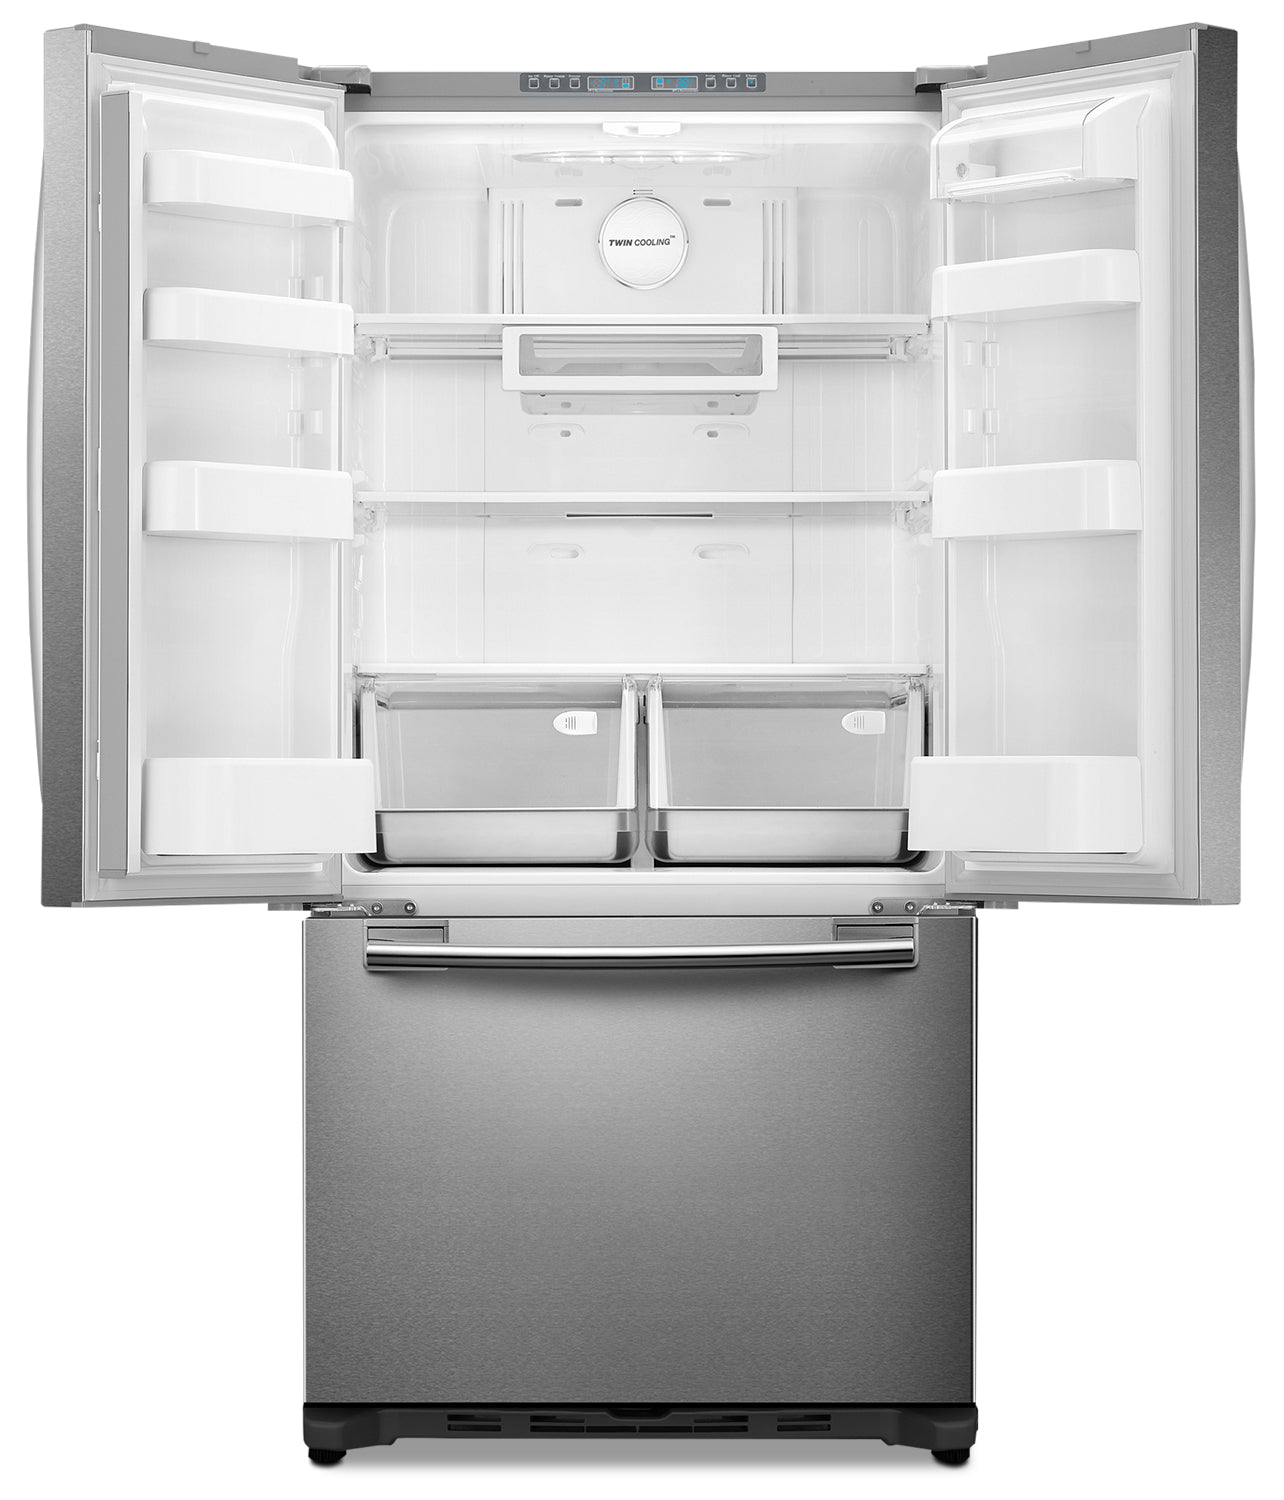 Samsung Stainless Steel Counter Depth French Door Refrigerator 175